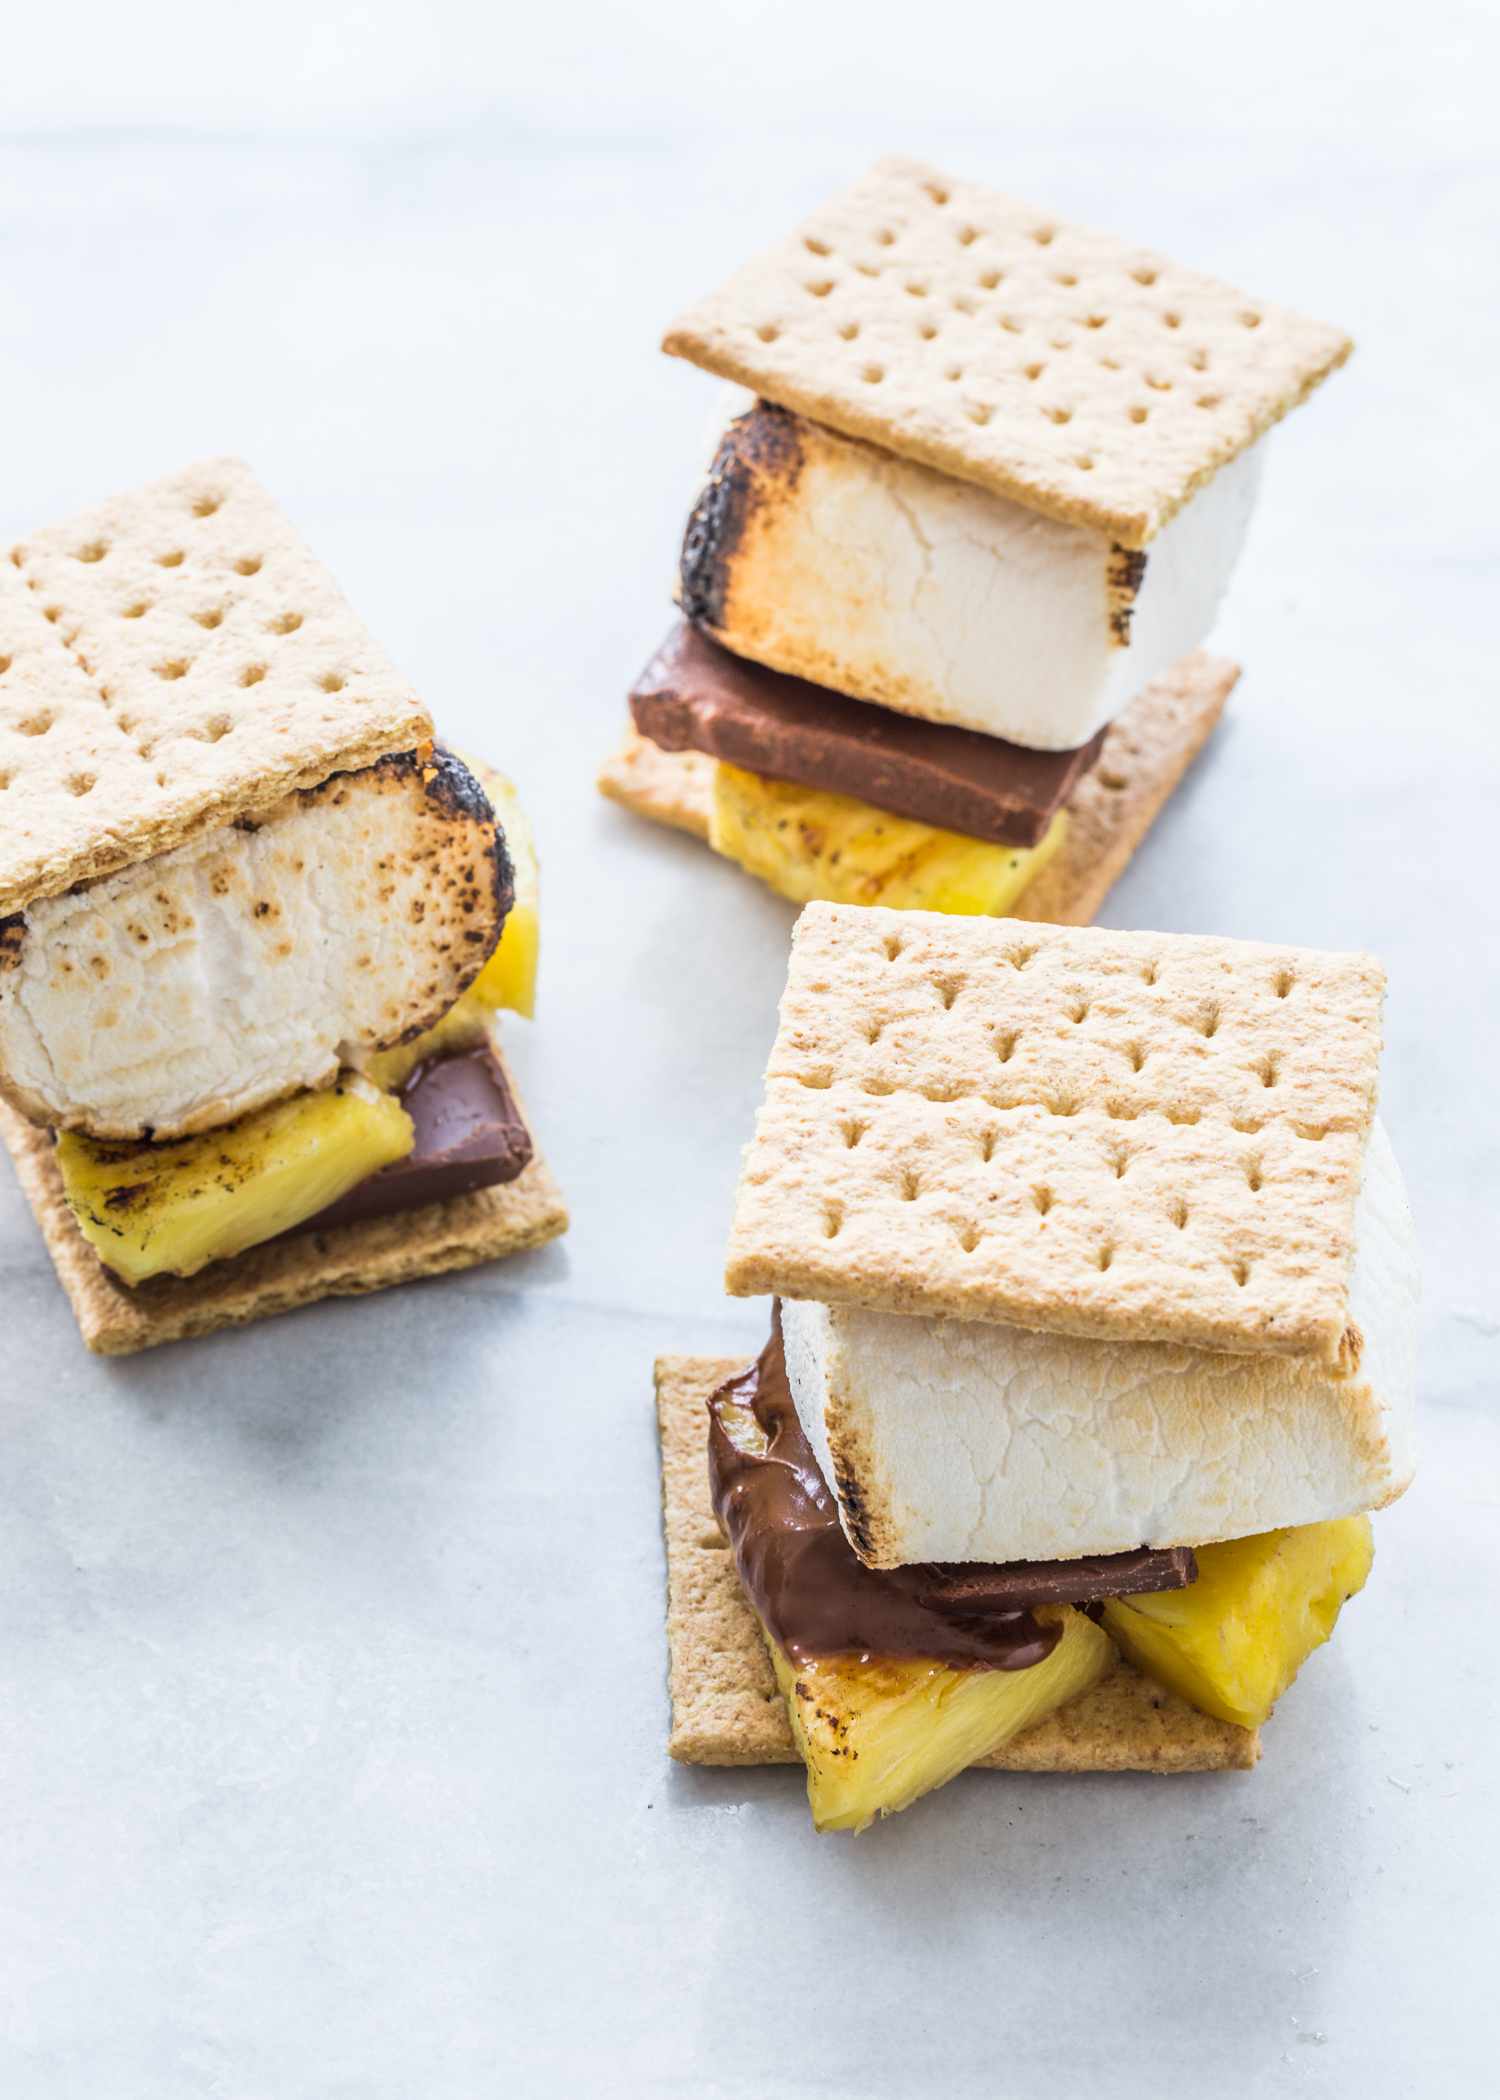 Grilled Pineapple S'mores with Campfire® Marshmallows, milk chocolate, and grilled pineapple